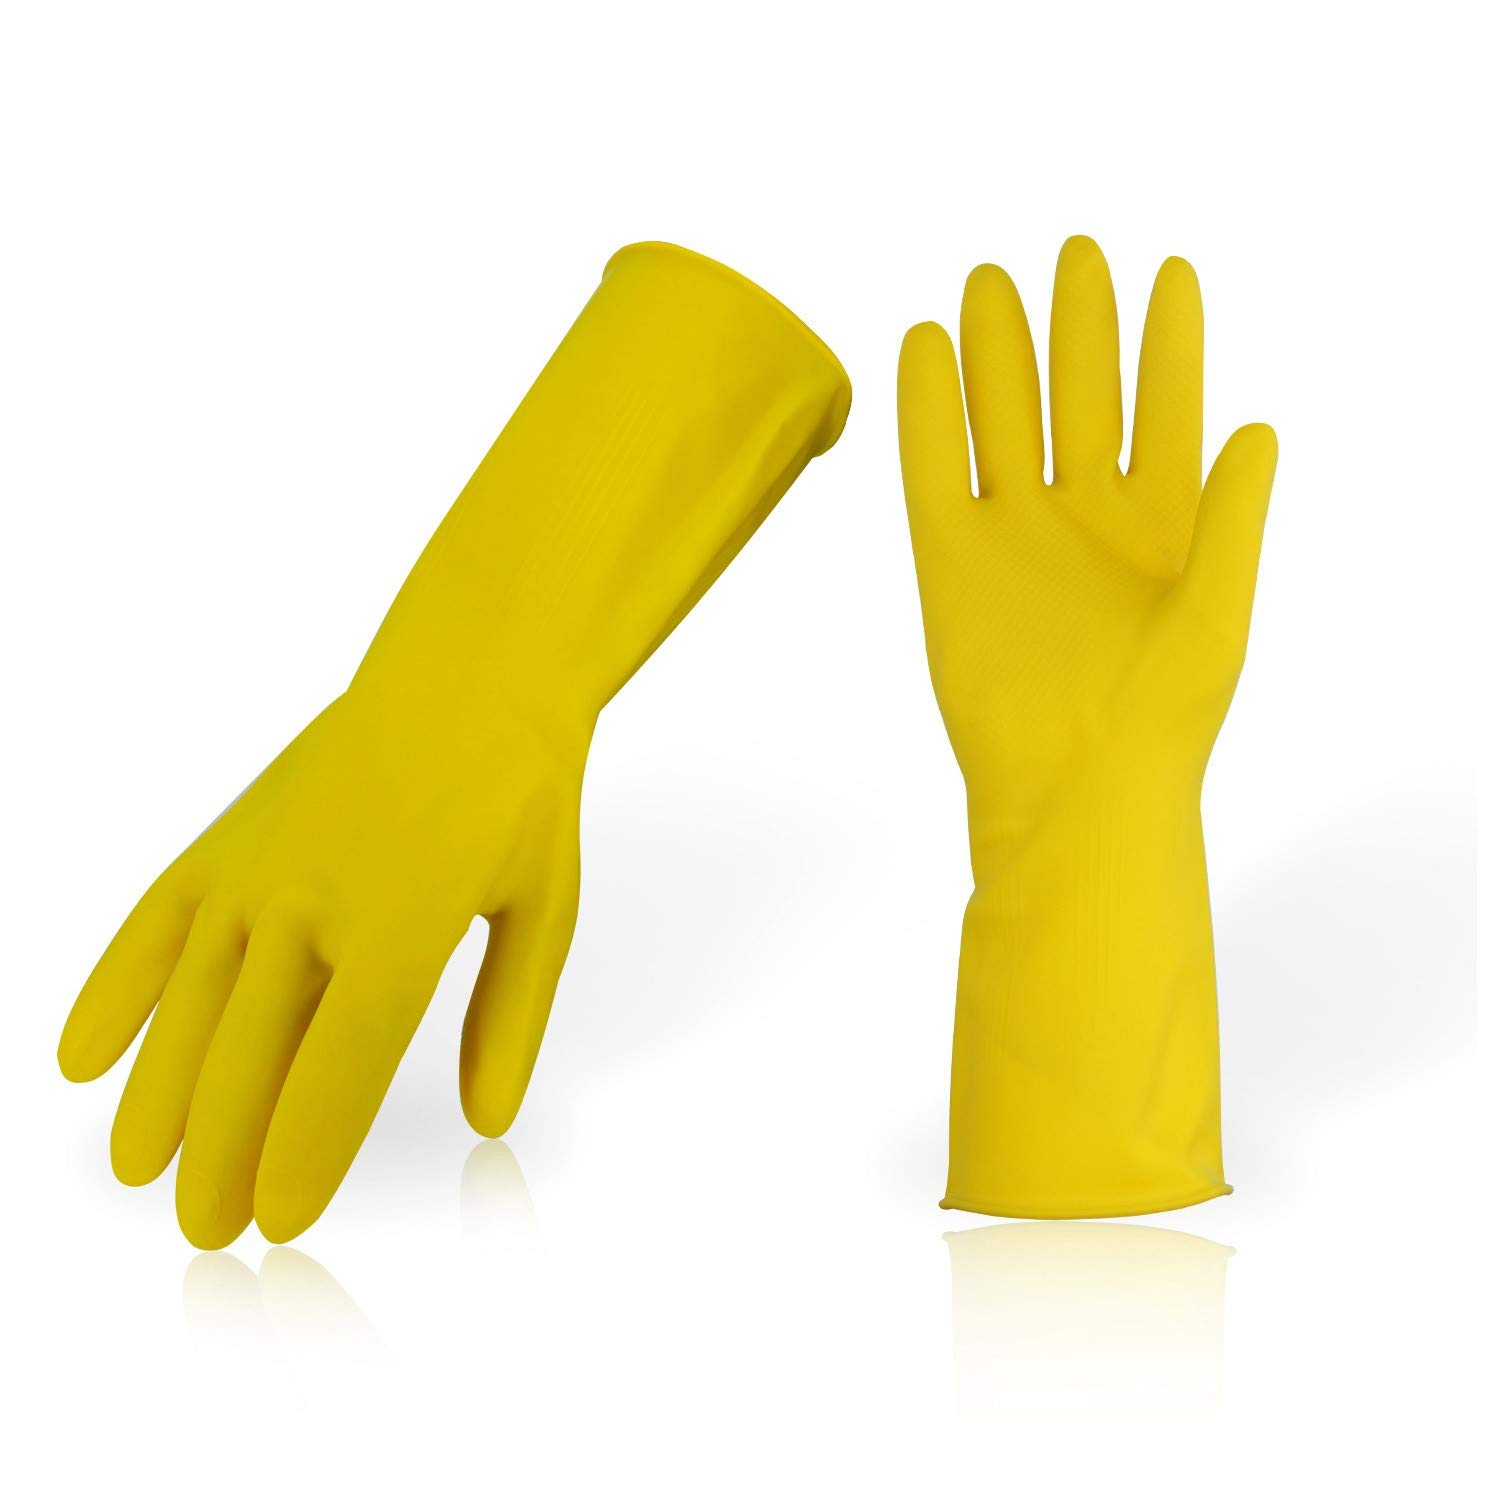 Vgo 10 Pairs Reusable Household Cleaning Dishwashing Kitchen Glove, Long Sleeve Thick Latex Working, Painting, Gardening Gloves,Pet Care(10 Pairs,Size M,Yellow,HH4601) Laborsing Safety Products Inc.